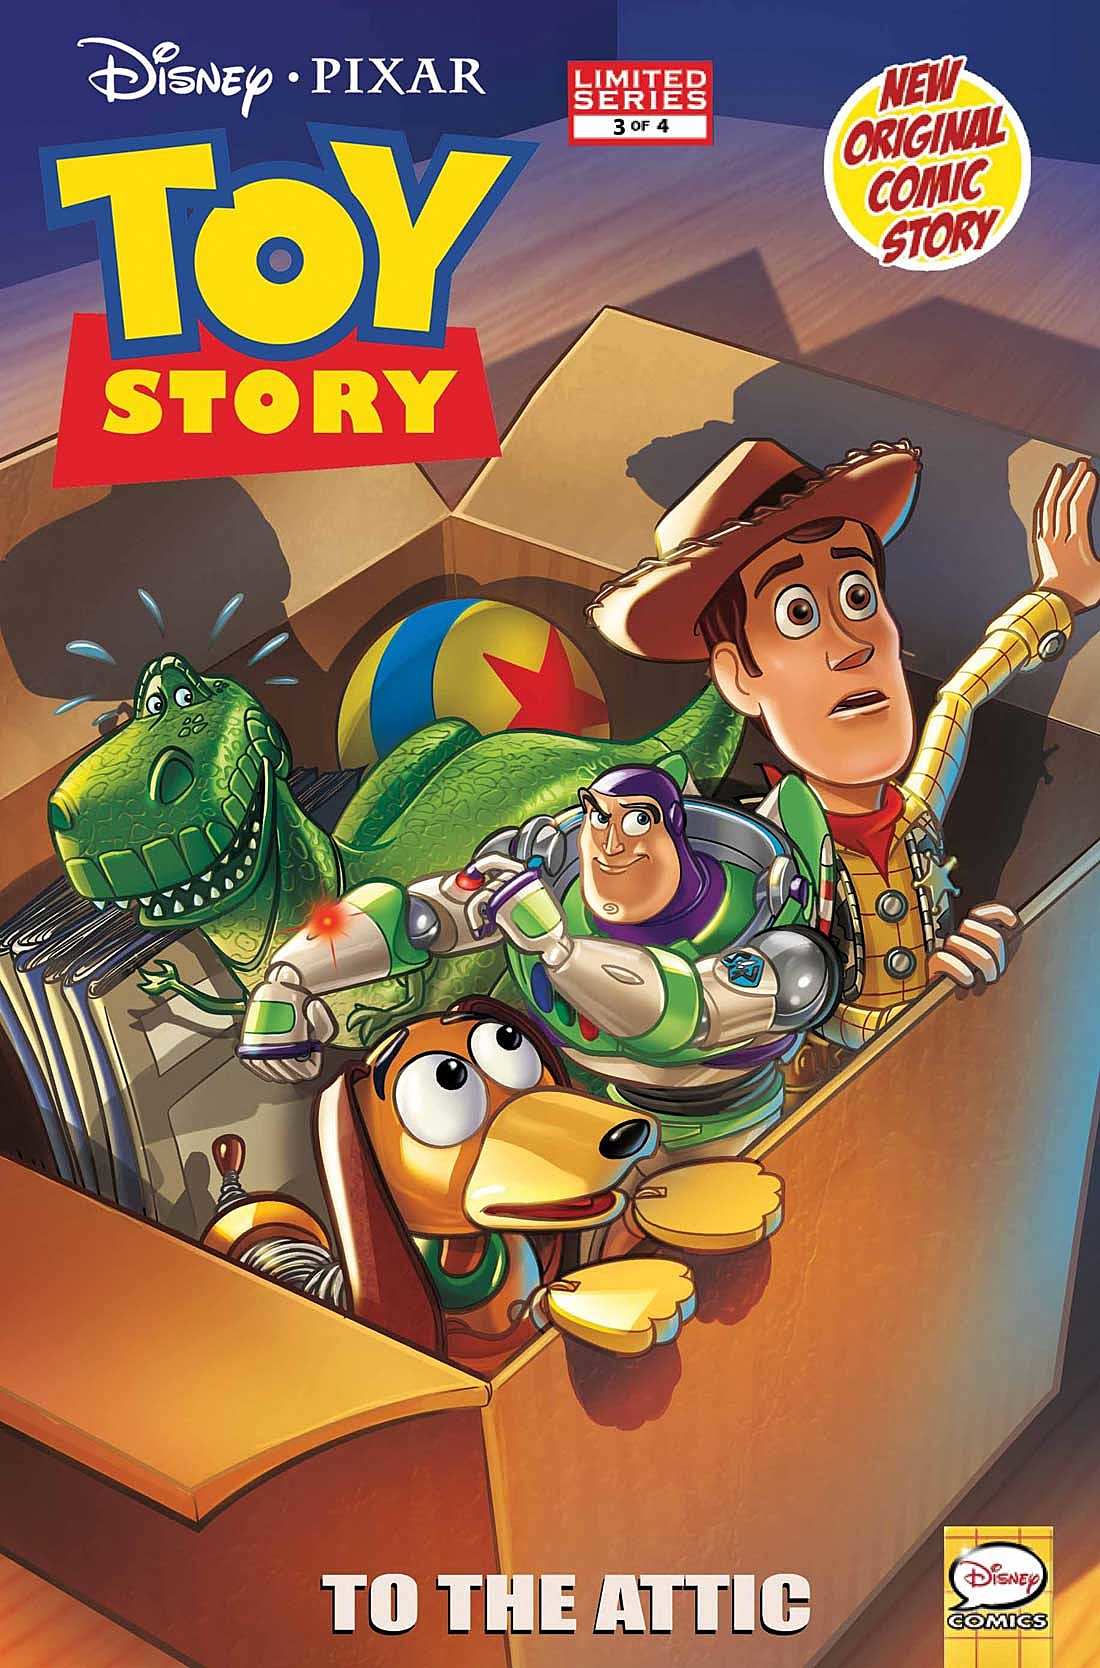 Toy Story 4 2012 : Marvel and icon comics on sale in may solicitations